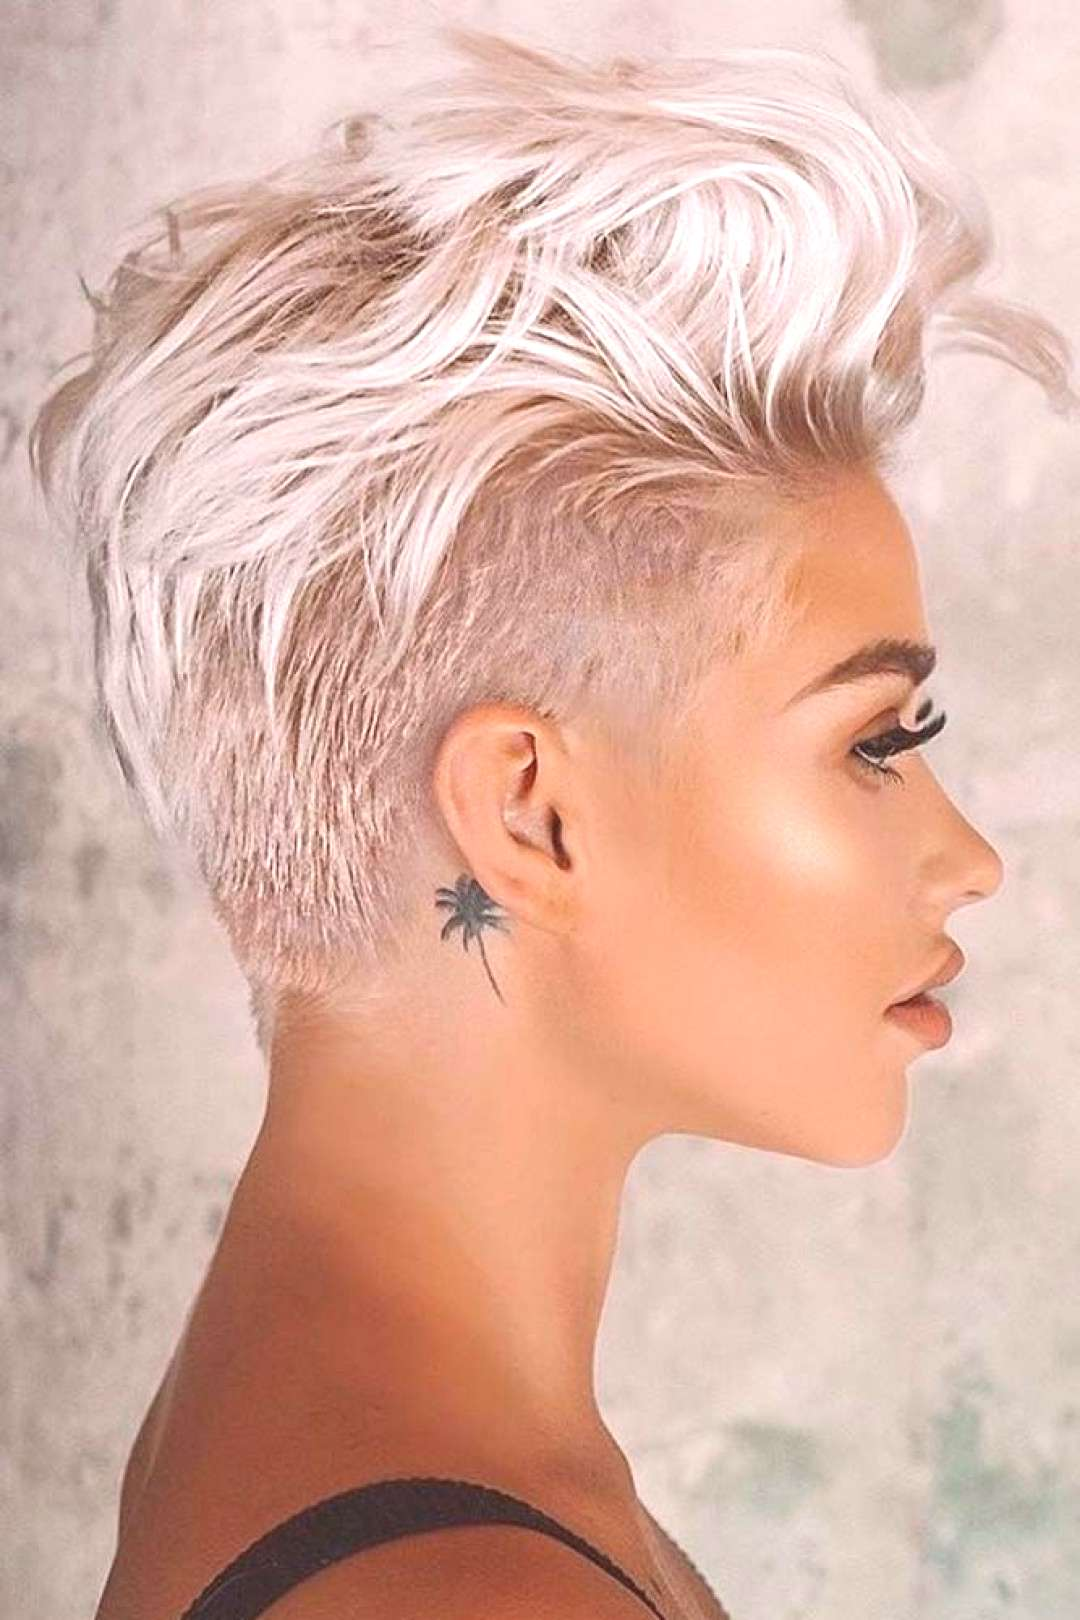 Amazing Long Pixie For Your Stylish And Dramatic Look ★ A long pixie cut is something that every